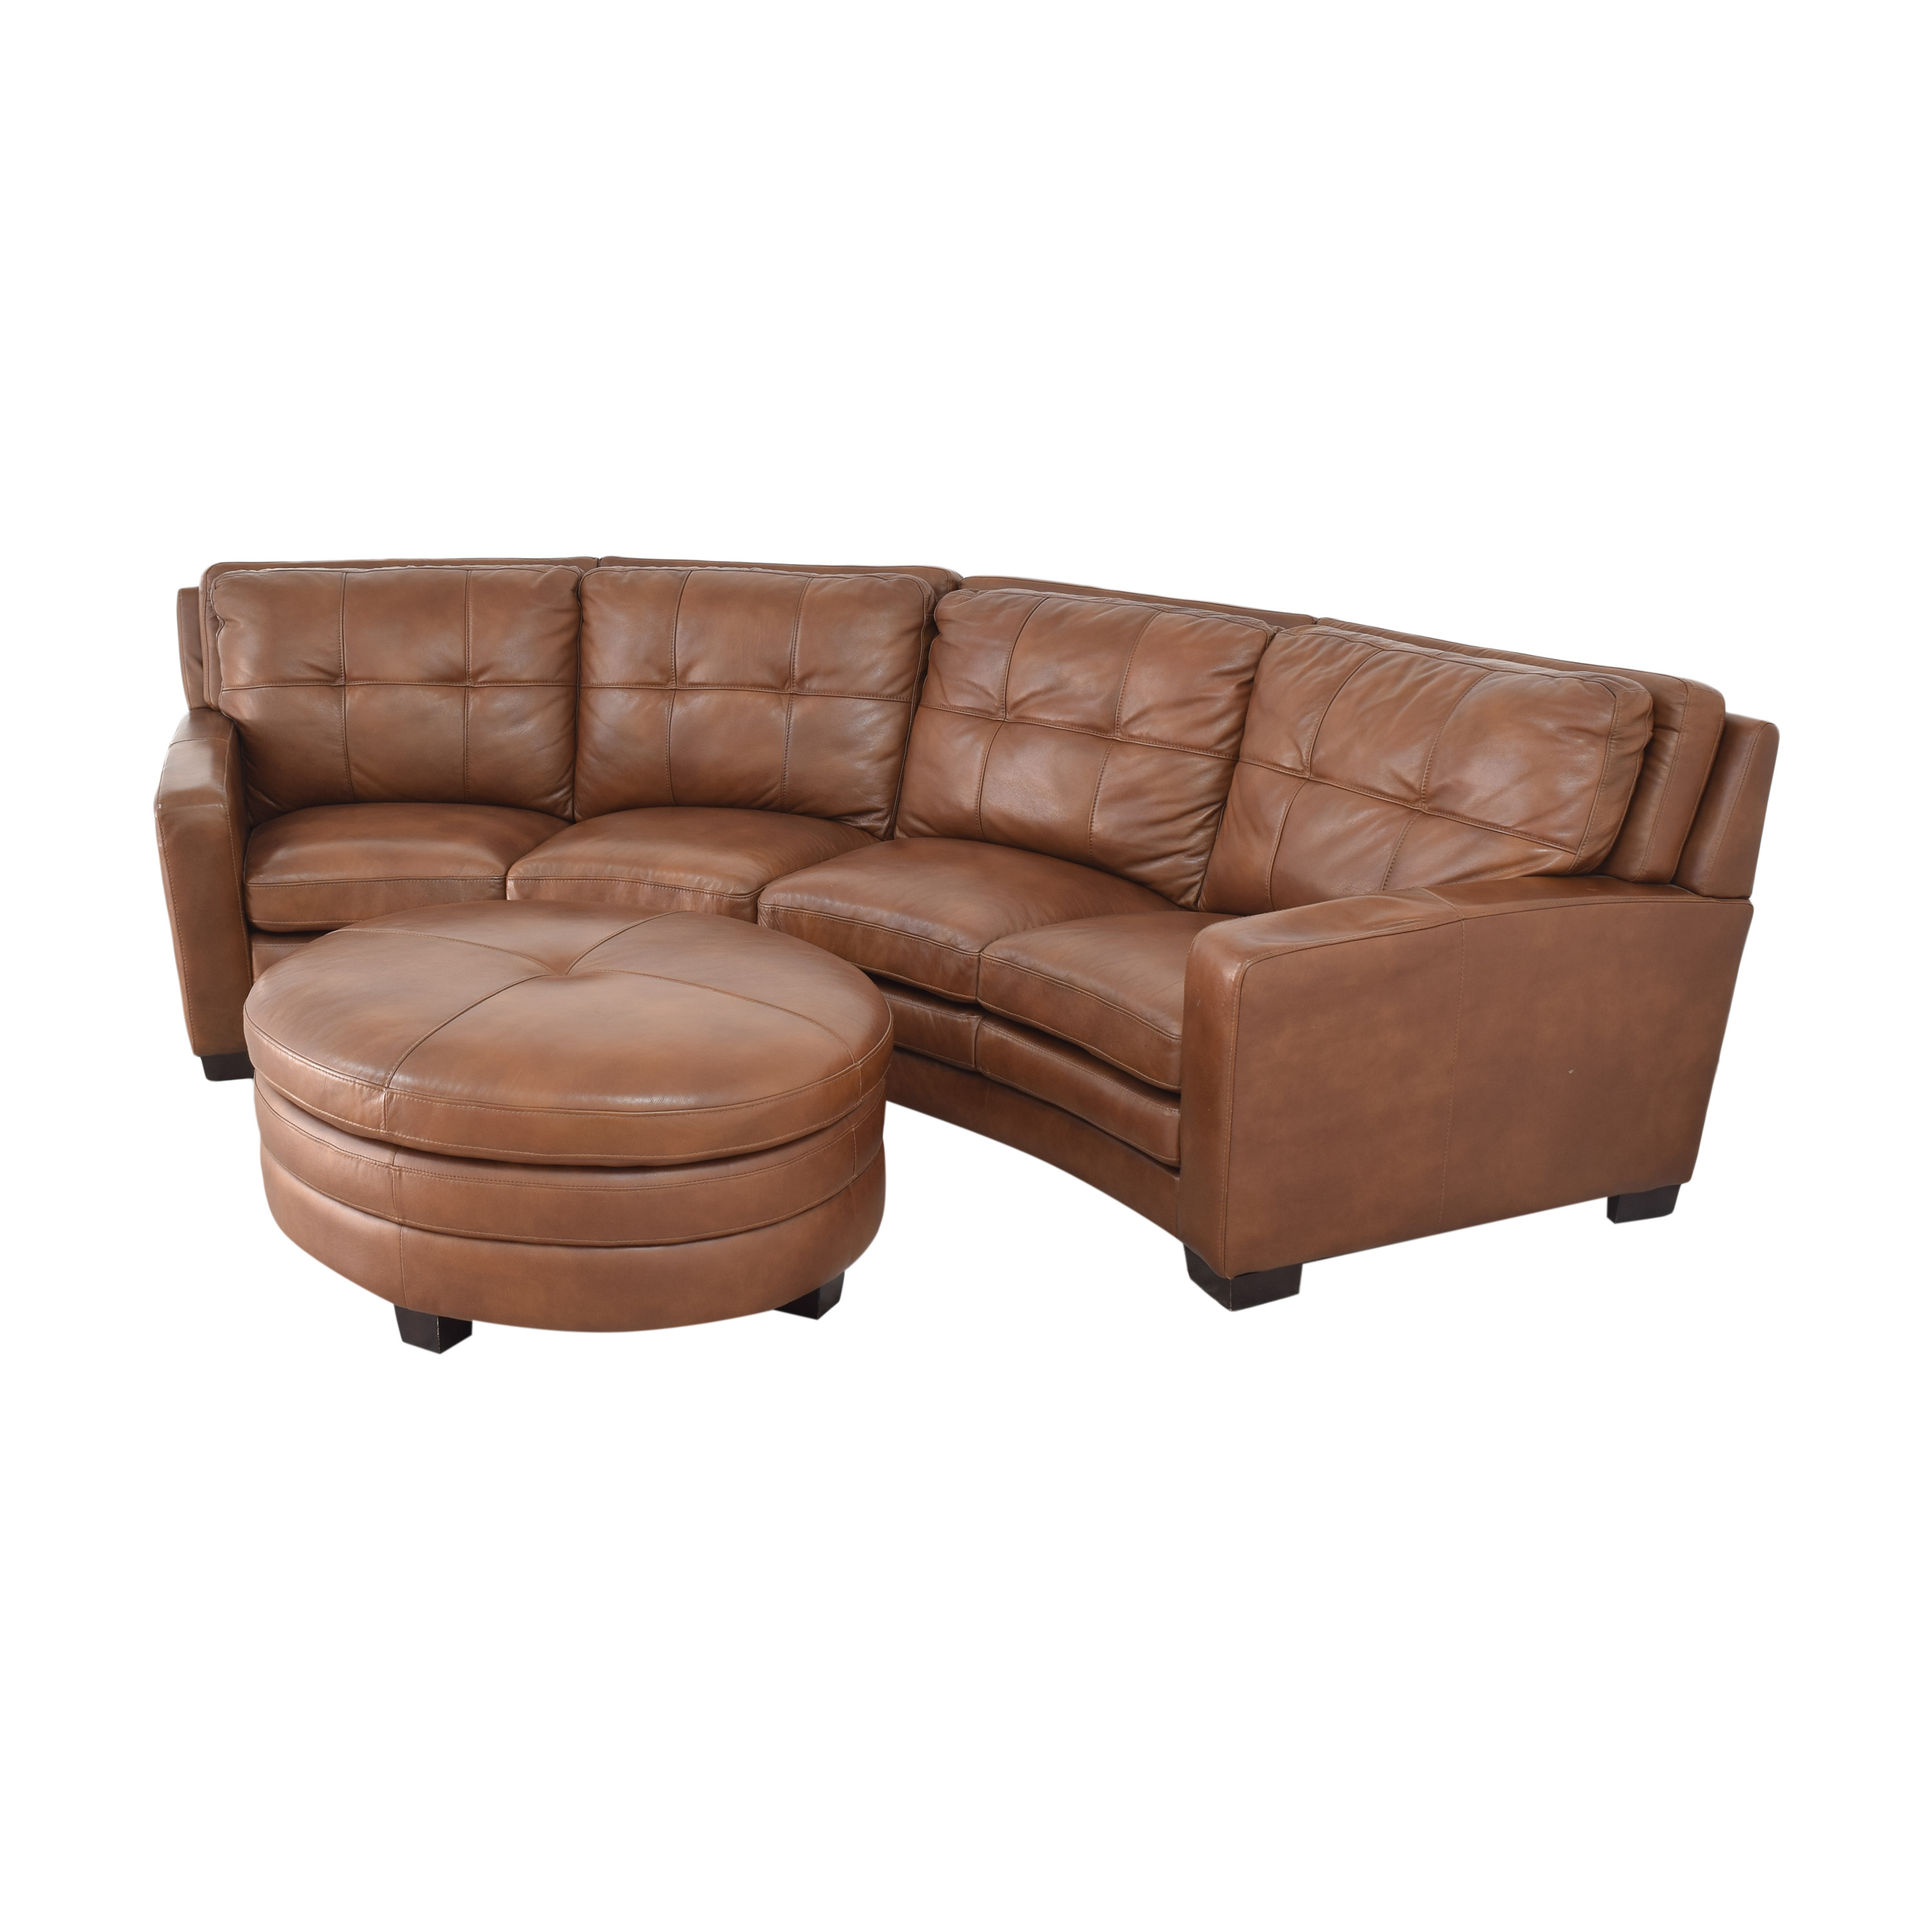 Crescent Sectional Sofa with Ottoman brown